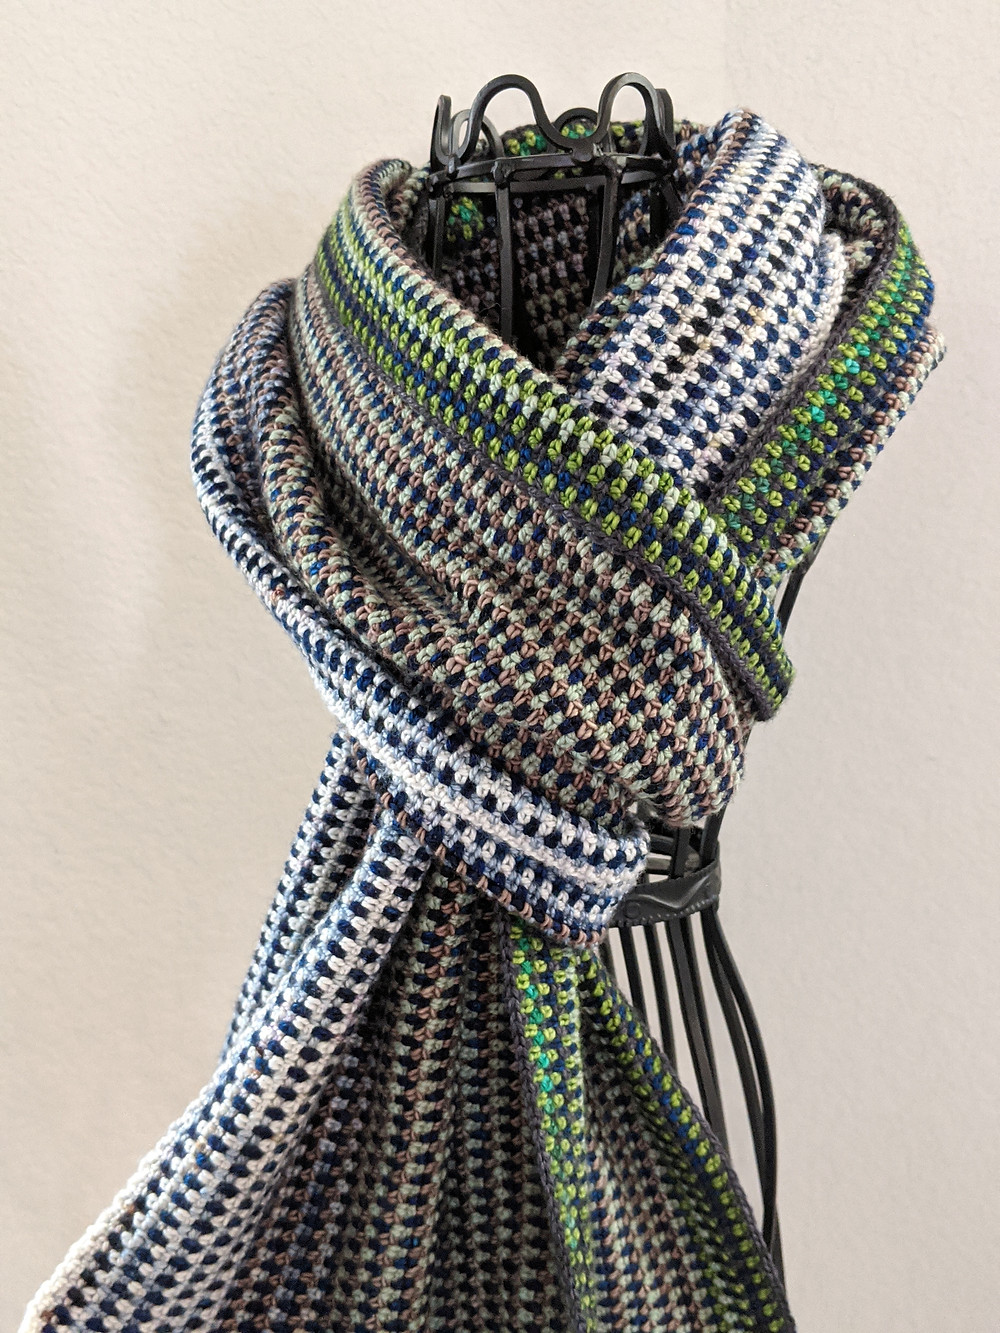 Linen Stitch Scarf Crocheted  with Leftover Yarn from the James River Wrap, Designed by Connie Lee Lynch of CrochEt Cetera by Connie Lee